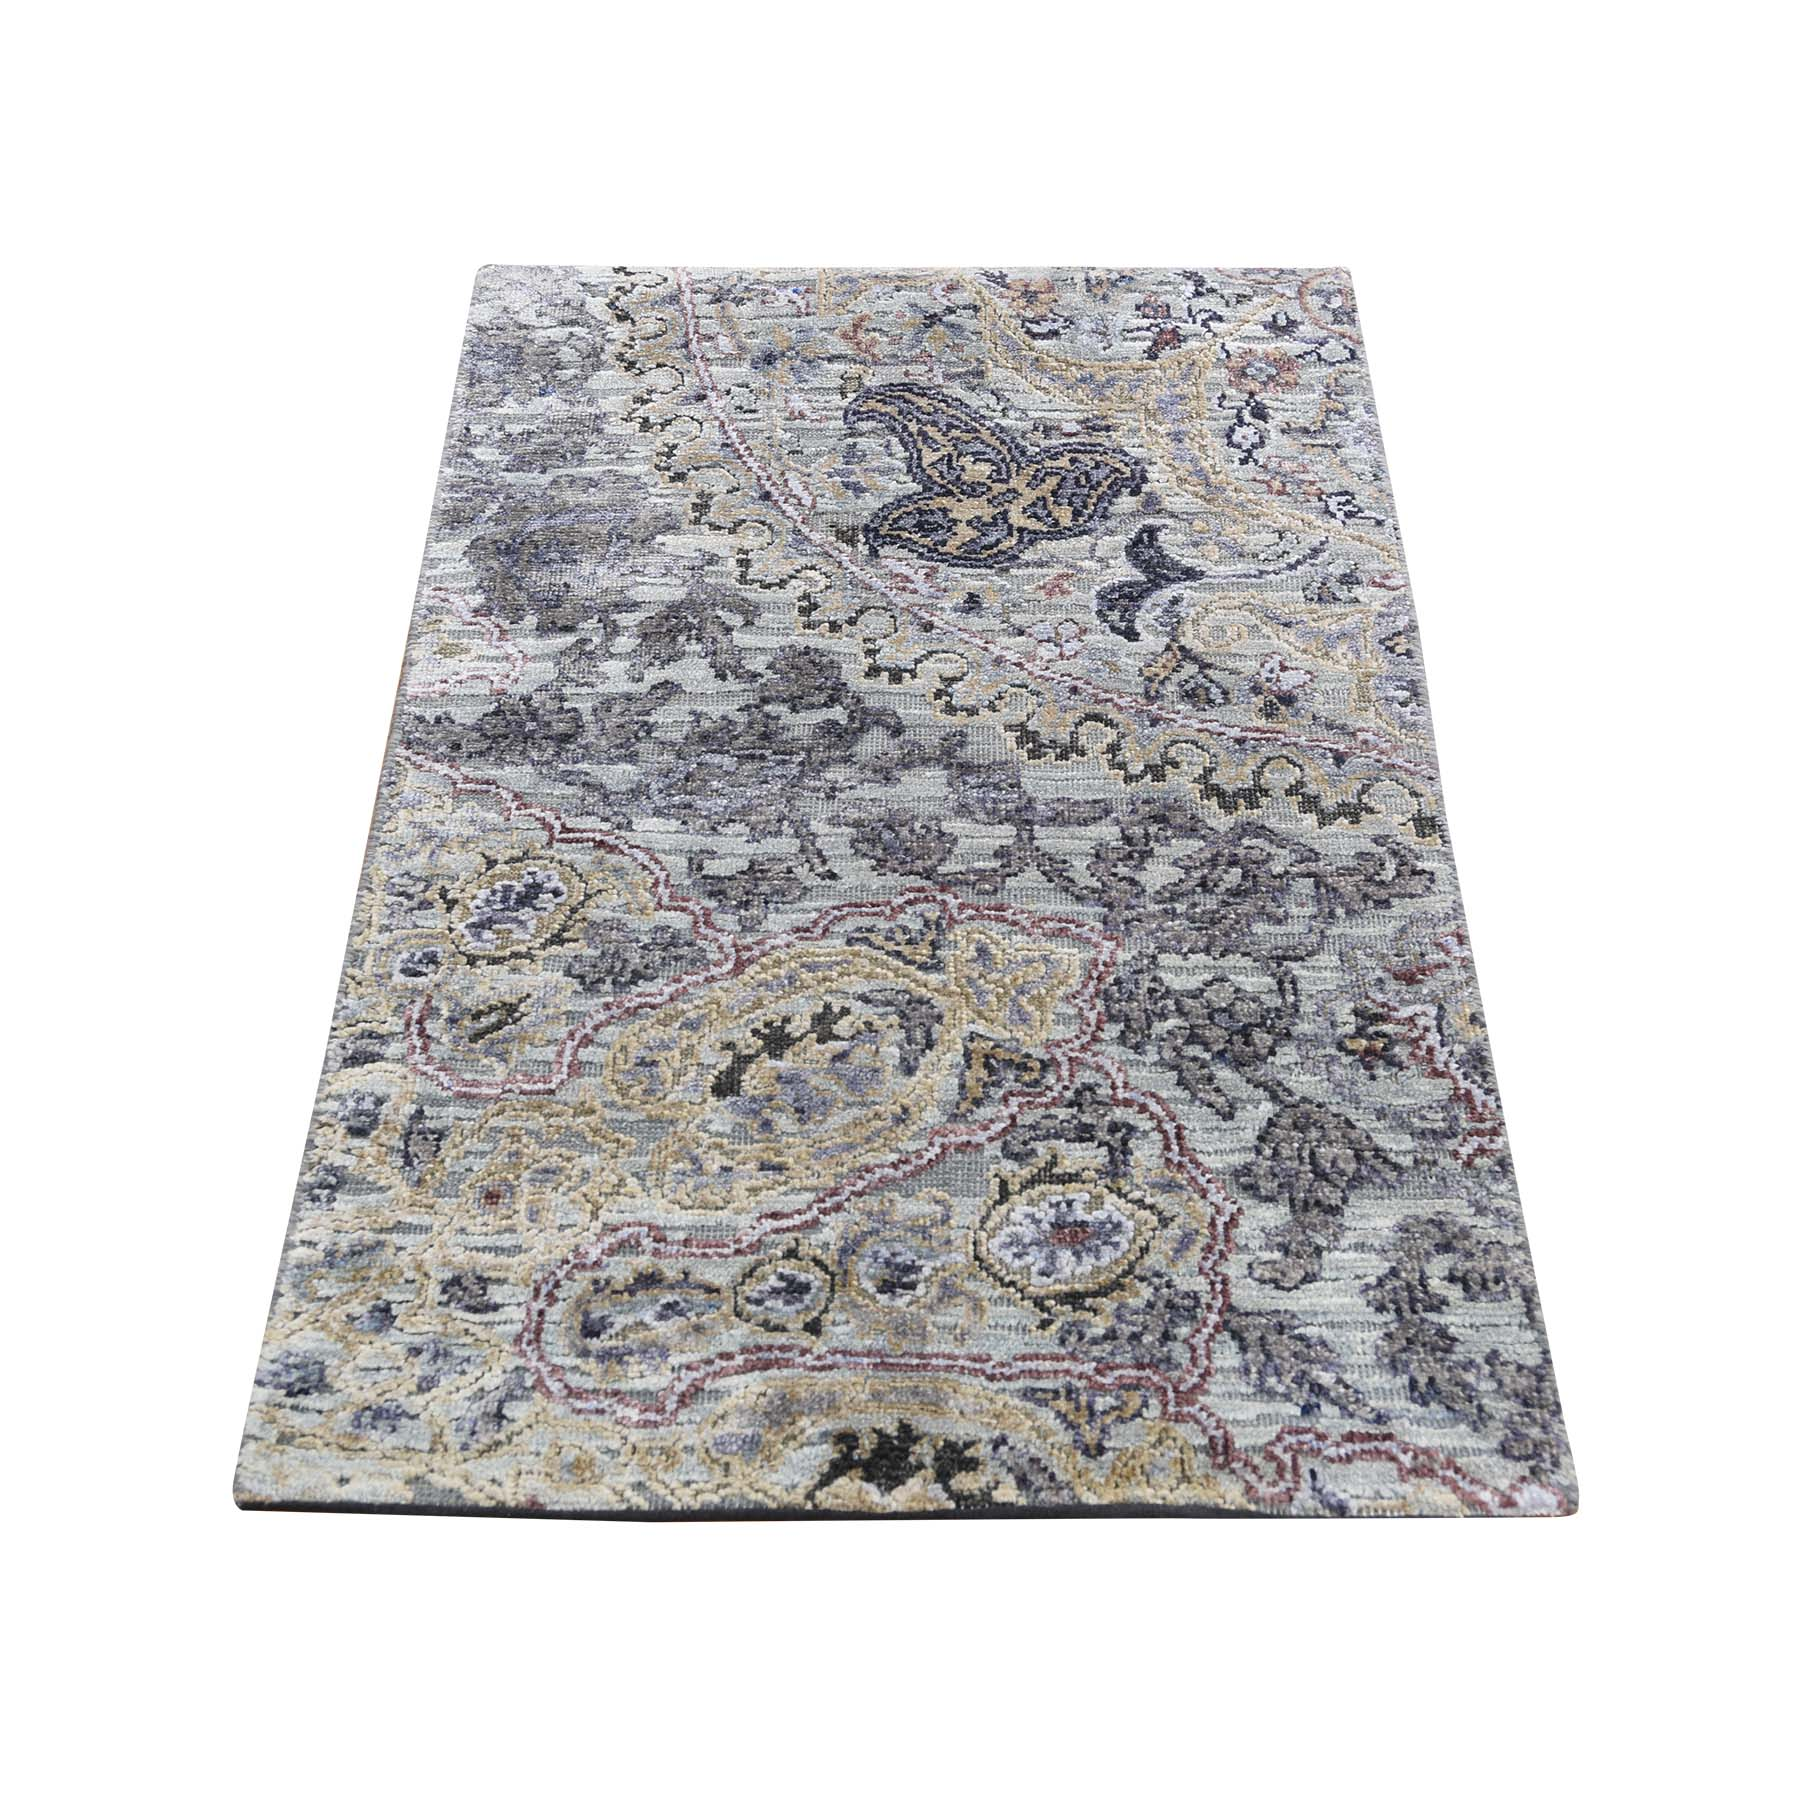 2'X3' The Maharaja, Silk With Textured Wool Hand-Knotted Oriental Sample Rug moadd8cb